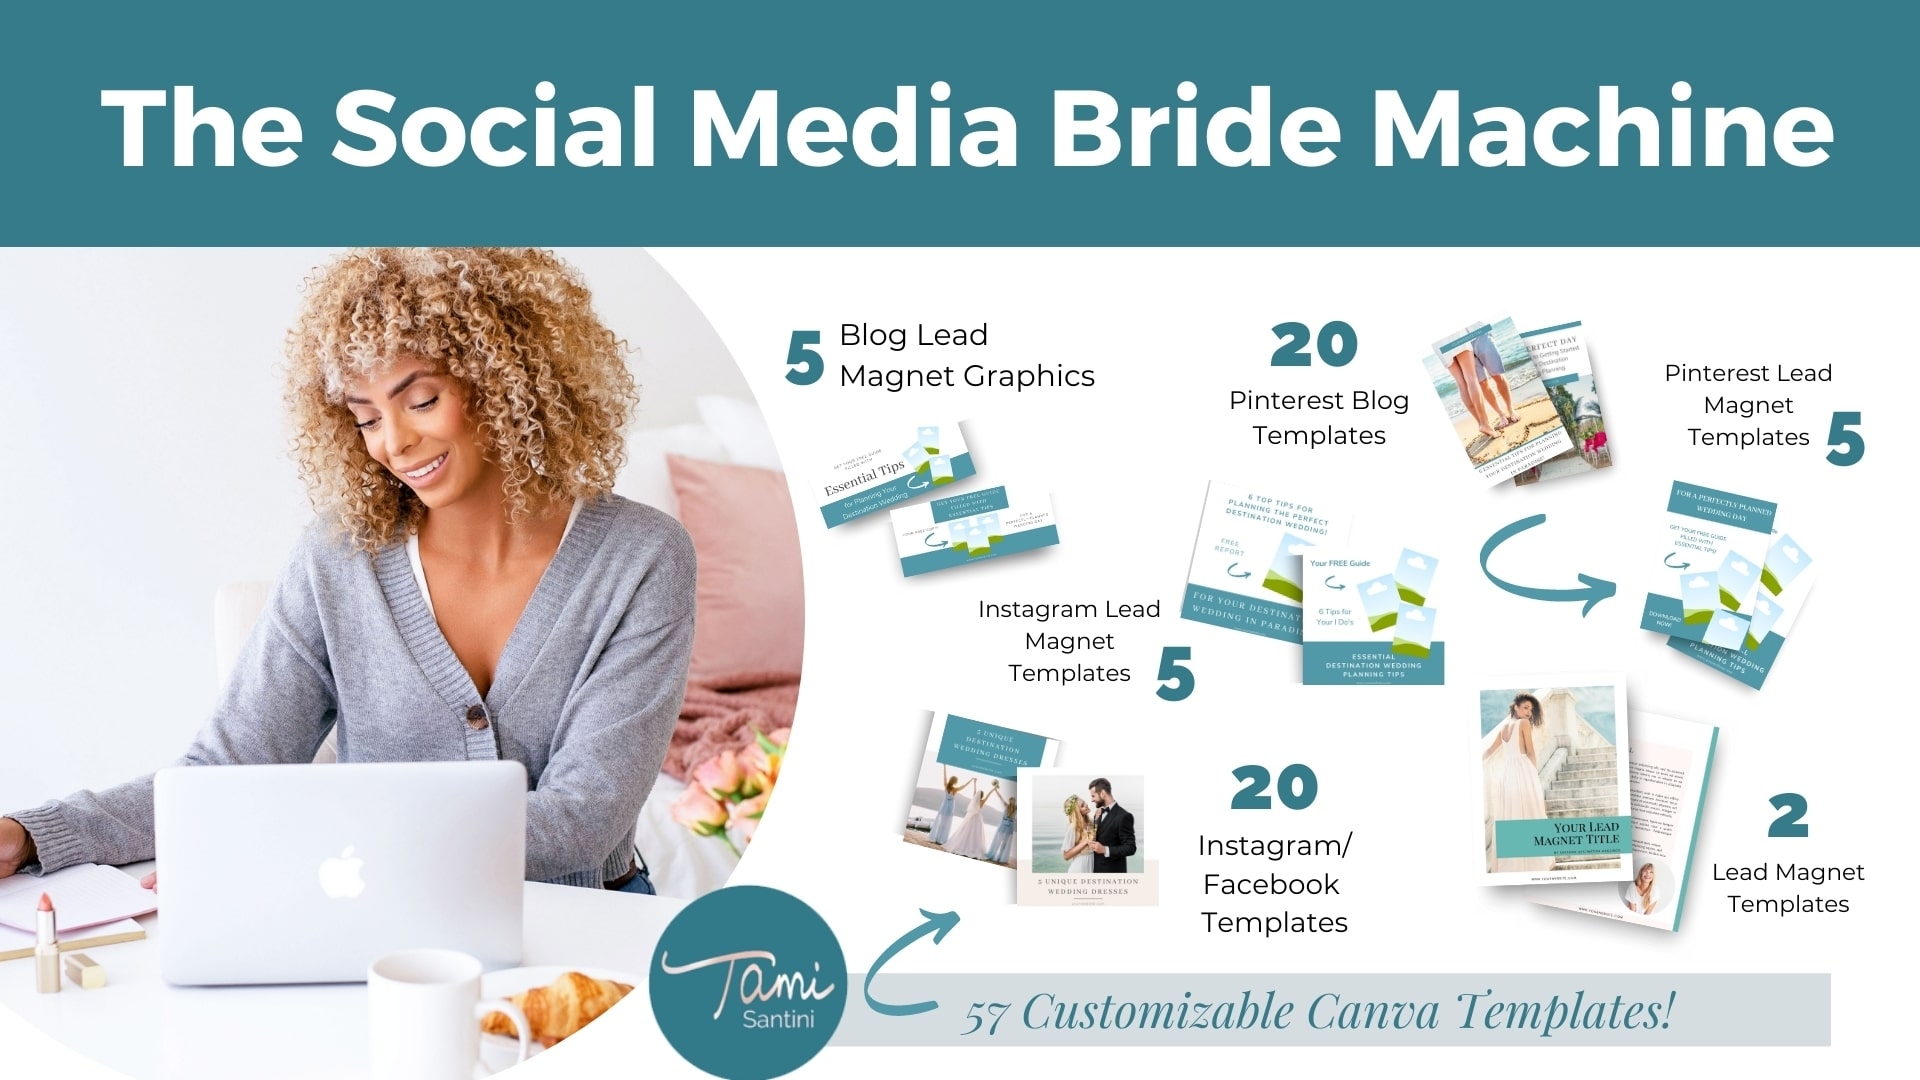 The Social Media Bride Machine